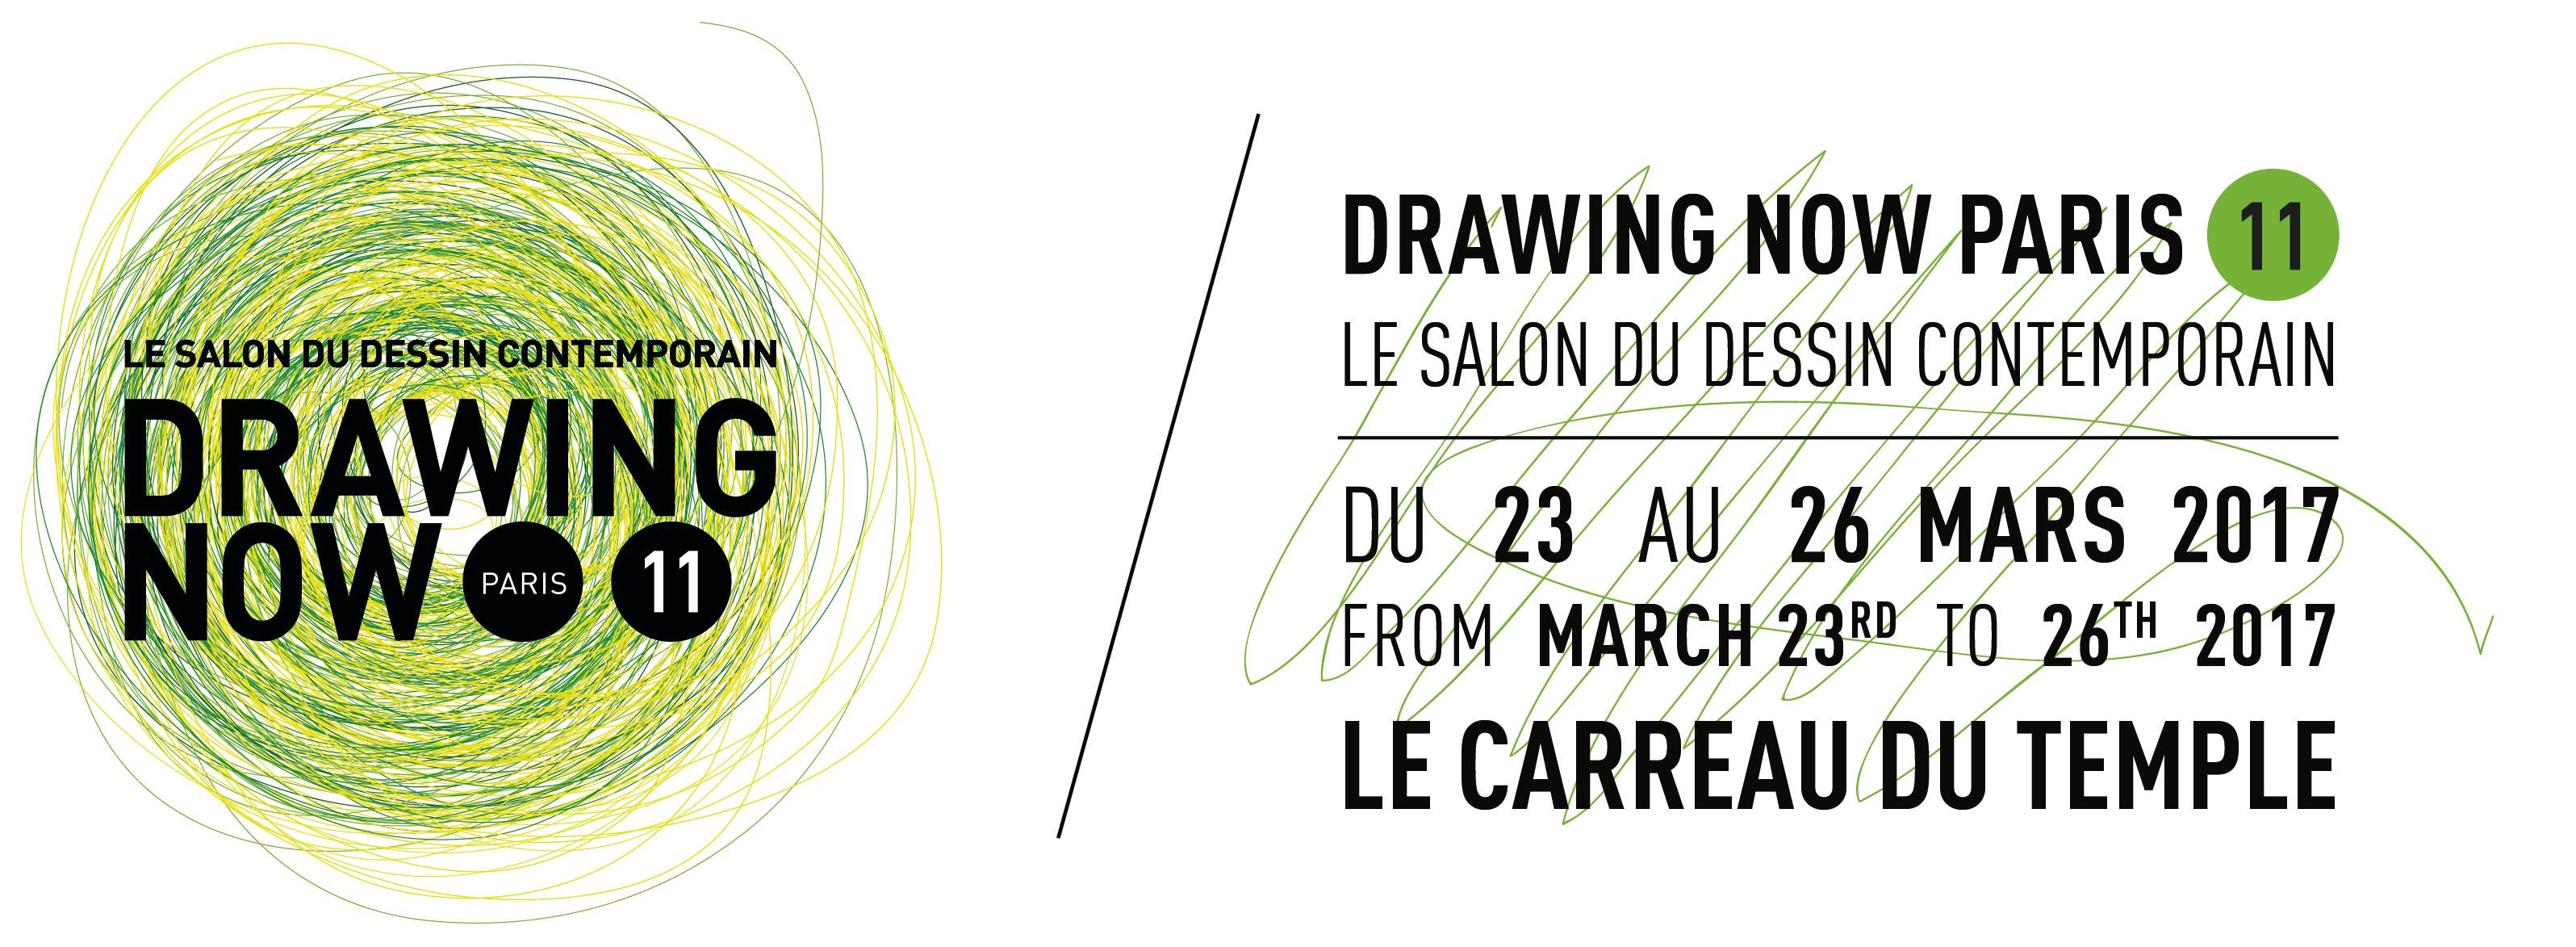 Drawing Now Paris l Le Salon du dessin contemporain